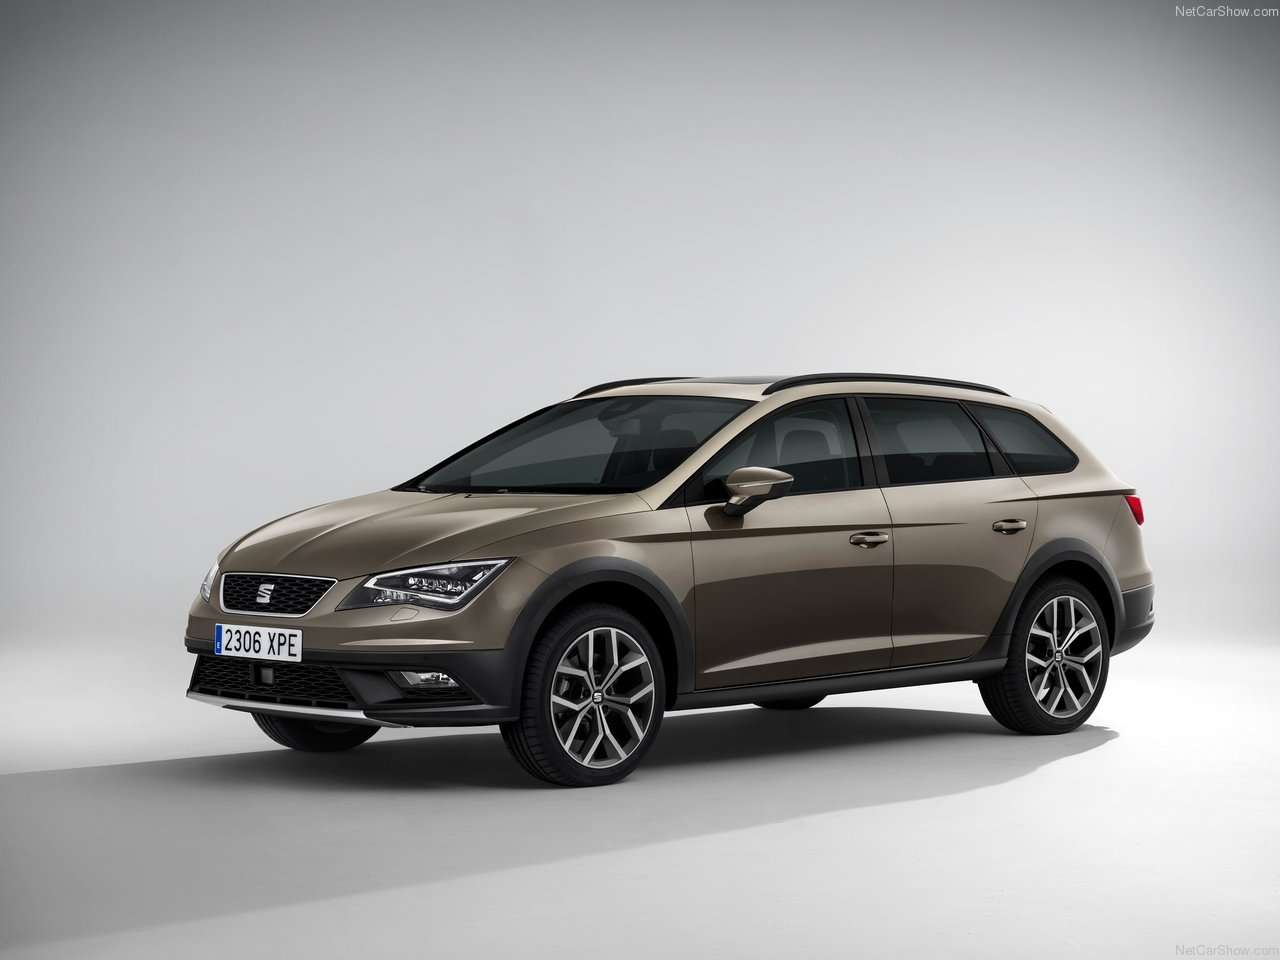 check out the previous article about the skoda octavia scout http allaboutdieselz blogspot ro 2015 12 skoda octavia scout 2015 html